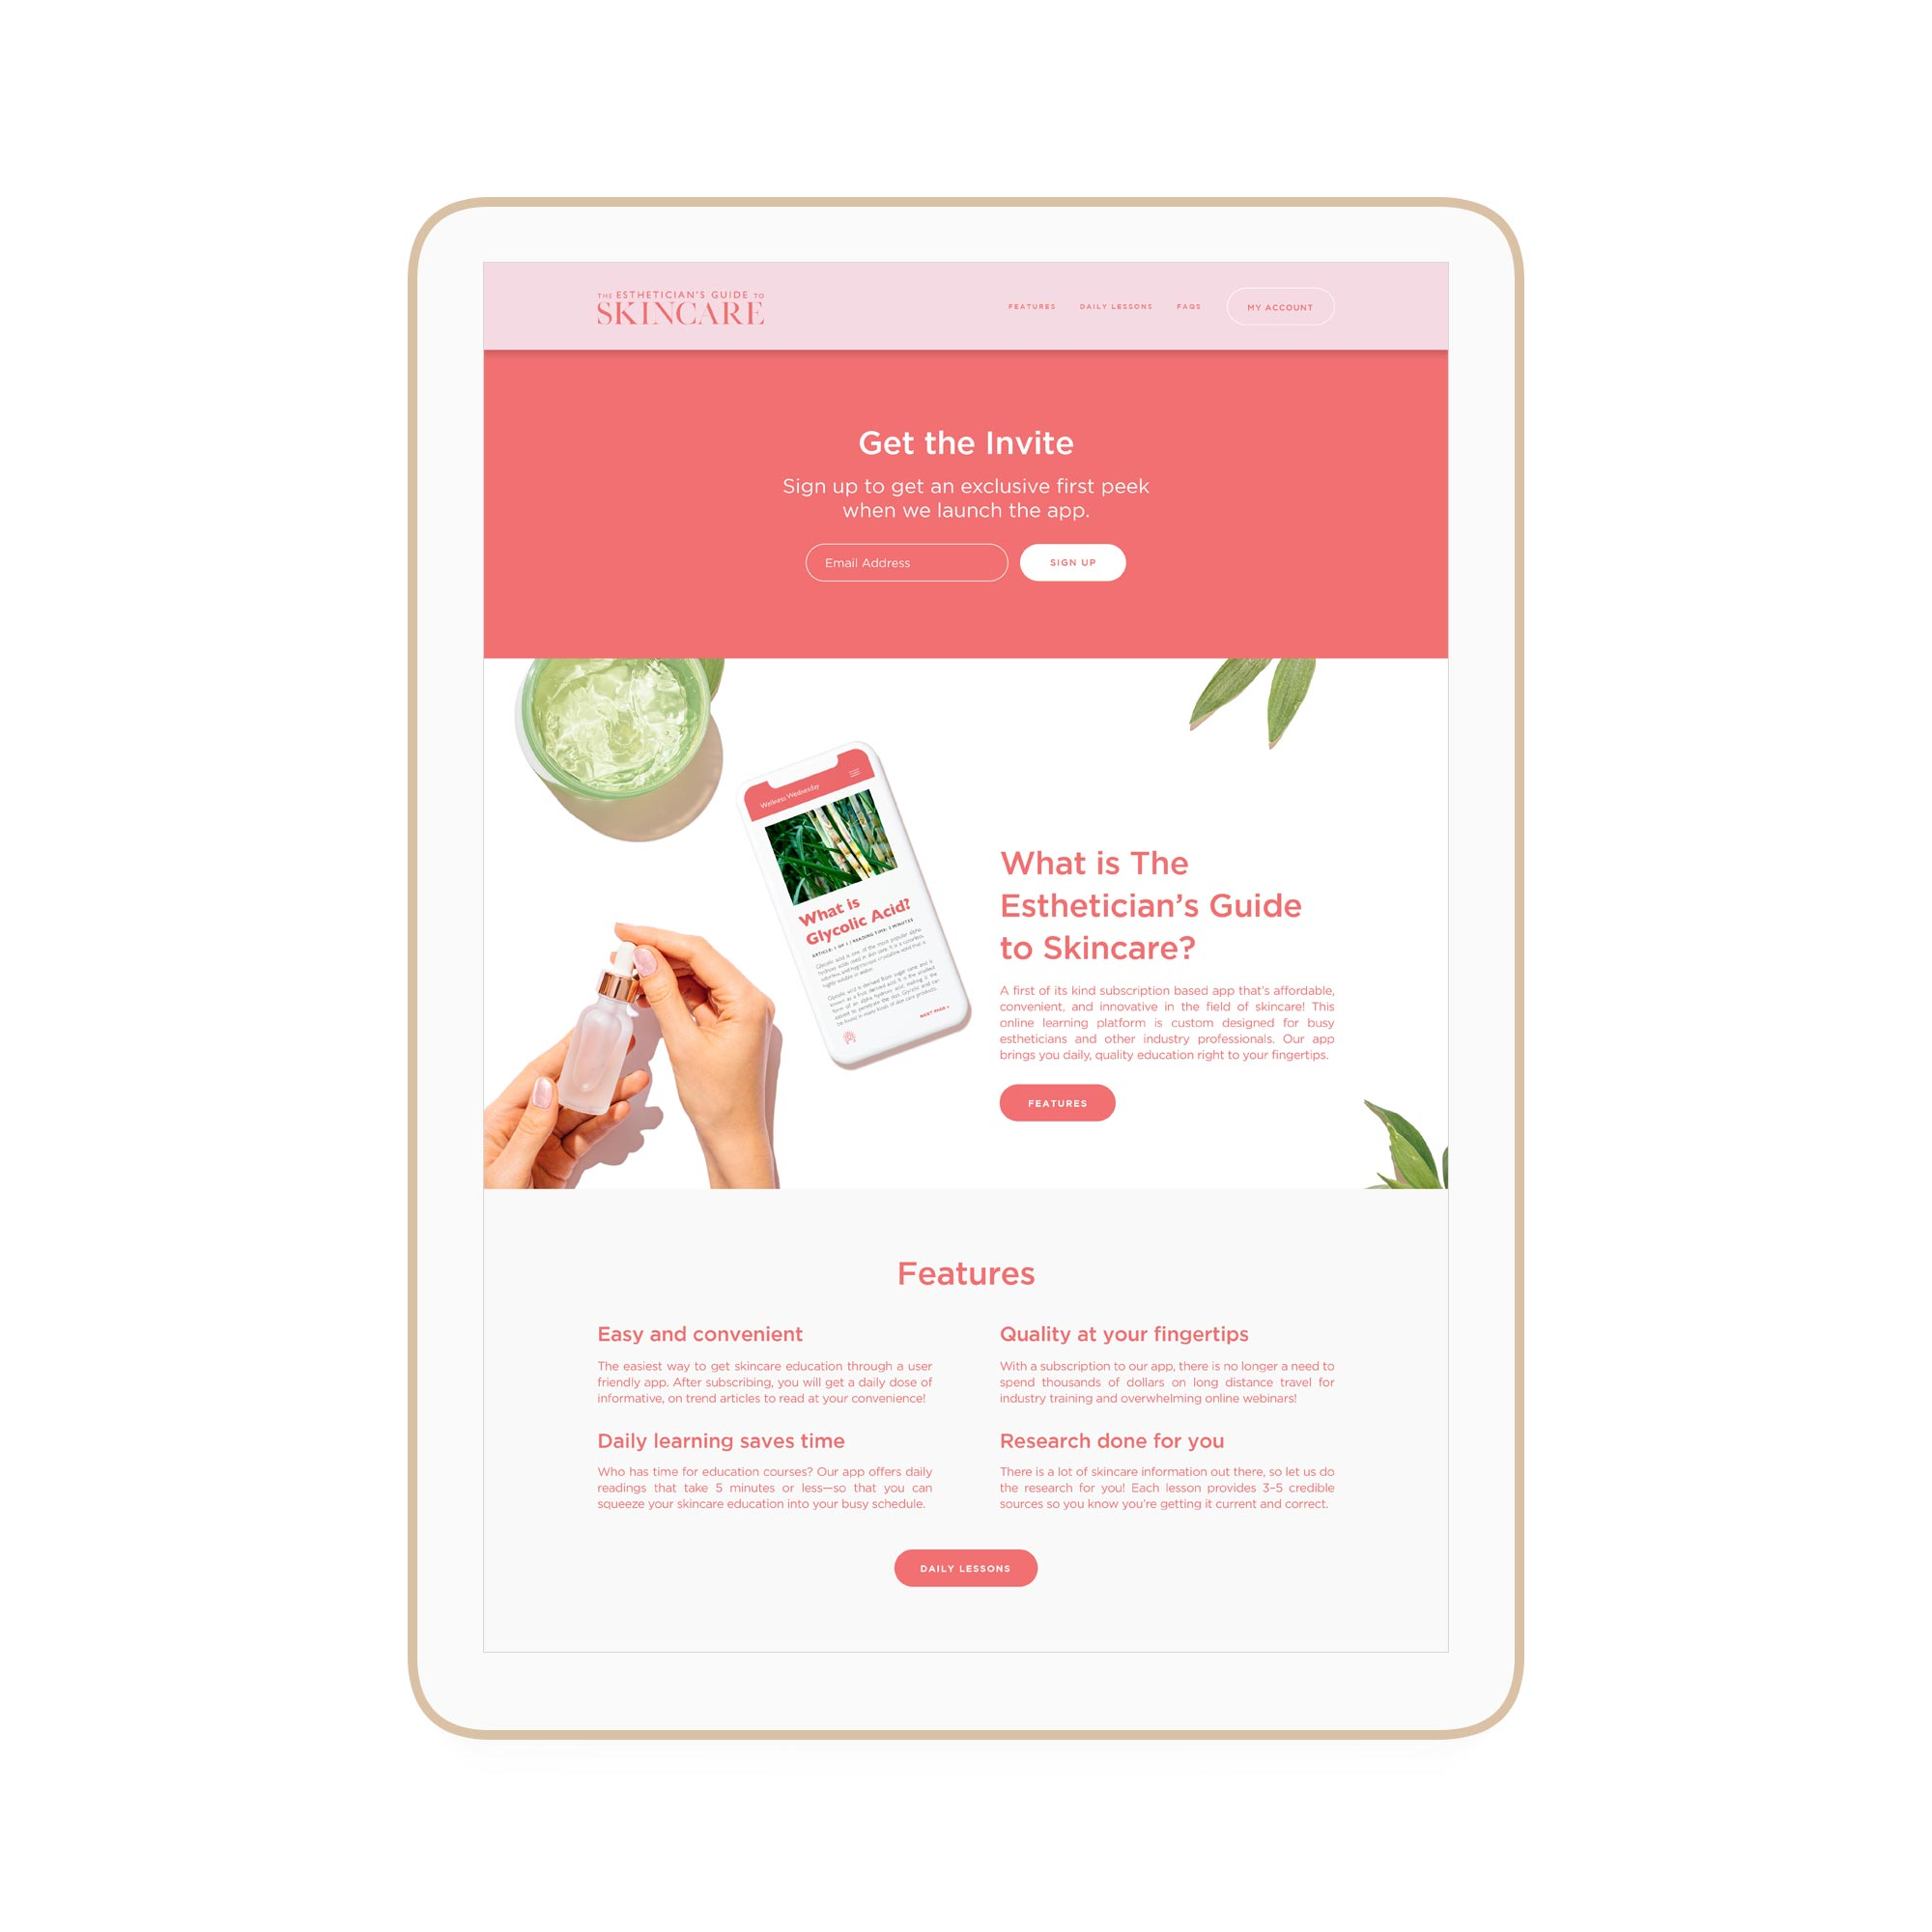 The Estheticians Guide to Skincare Winnipeg Feminist Brands Website Design Feminist Entrepreneurs iPad